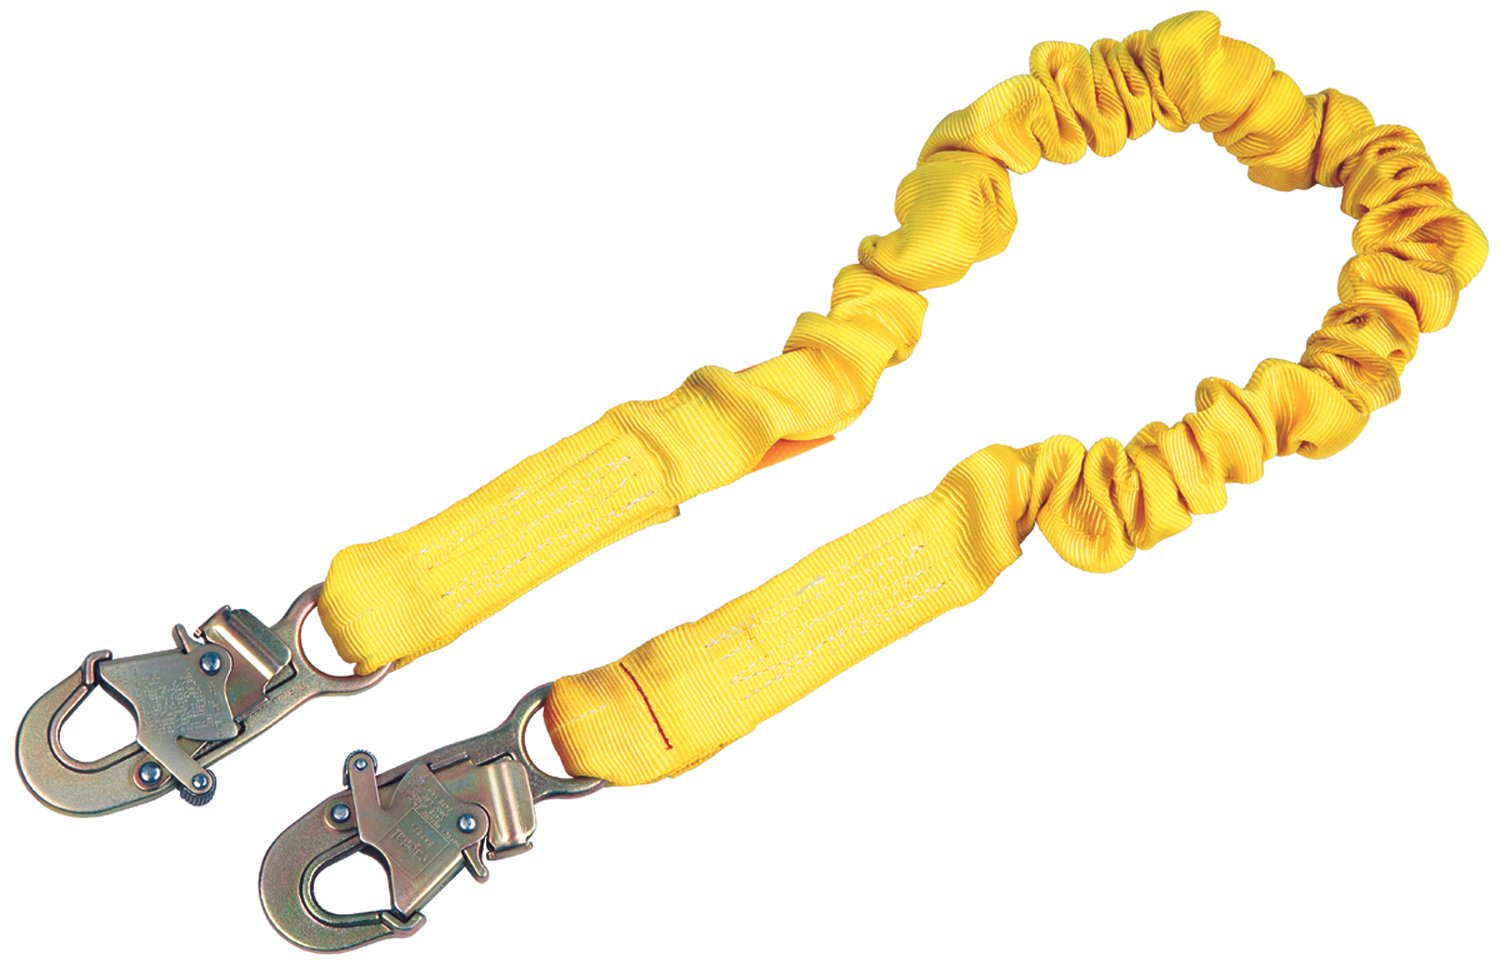 3M DBI-SALA Shockwave 2, 1244306 6' Shock Absorbing Lanyard, Tubular Web, Snap Hook At Ends, Yellow by 3M Personal Protective Equipment